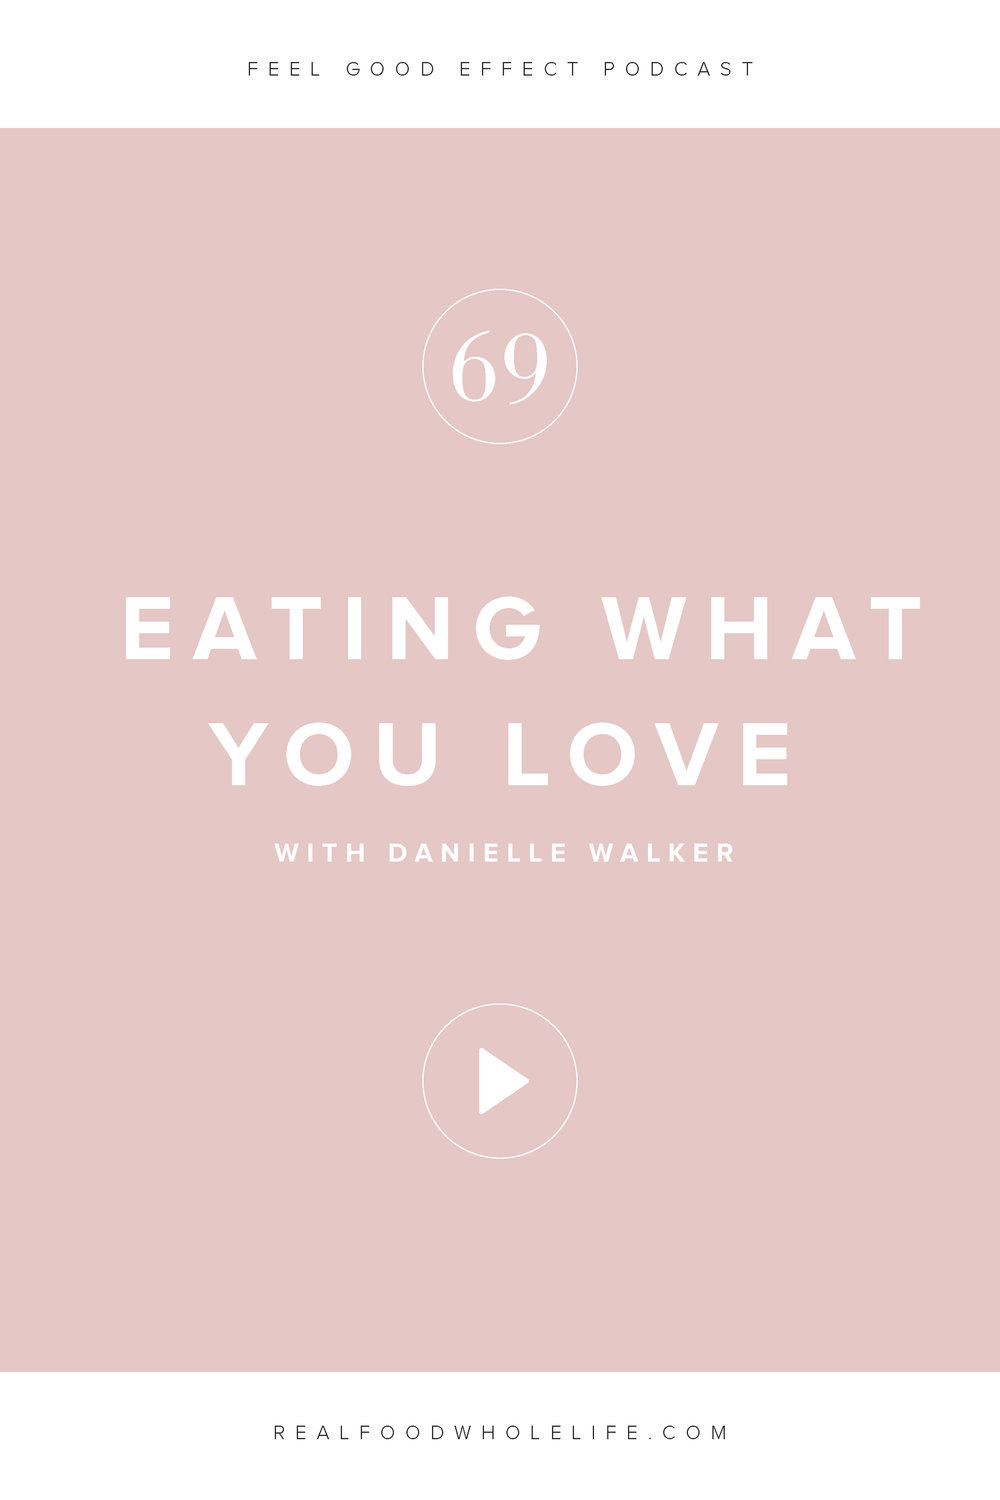 Eat What You Love, with Danielle Walker, and episodes from the Feel Good Effect Podcast. Listen for more on the process of creating recipes and cookbooks that people can trust, the challenges of being in the public light, and Danielle's movement away from the Against All Grain brand and more towards herself. #feelgoodeffect #podcast #episode #wellnesspodcast #healthyeating #balance